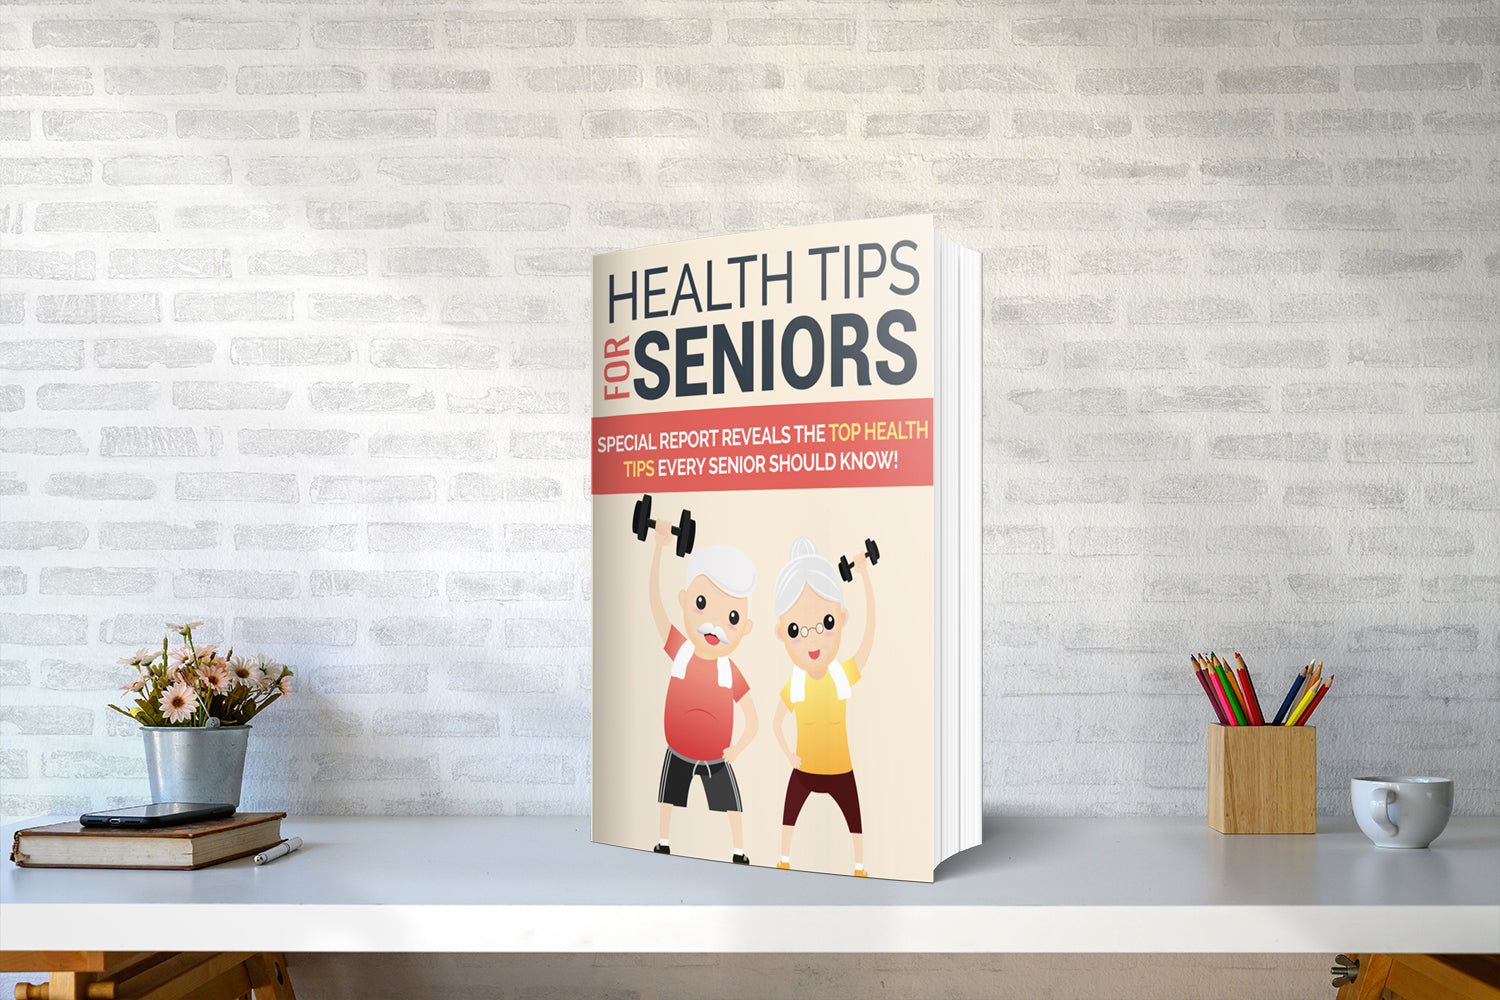 Health Tips For Seniors – Special Report Reveals The Top Health Tips Every Senior Should Know!